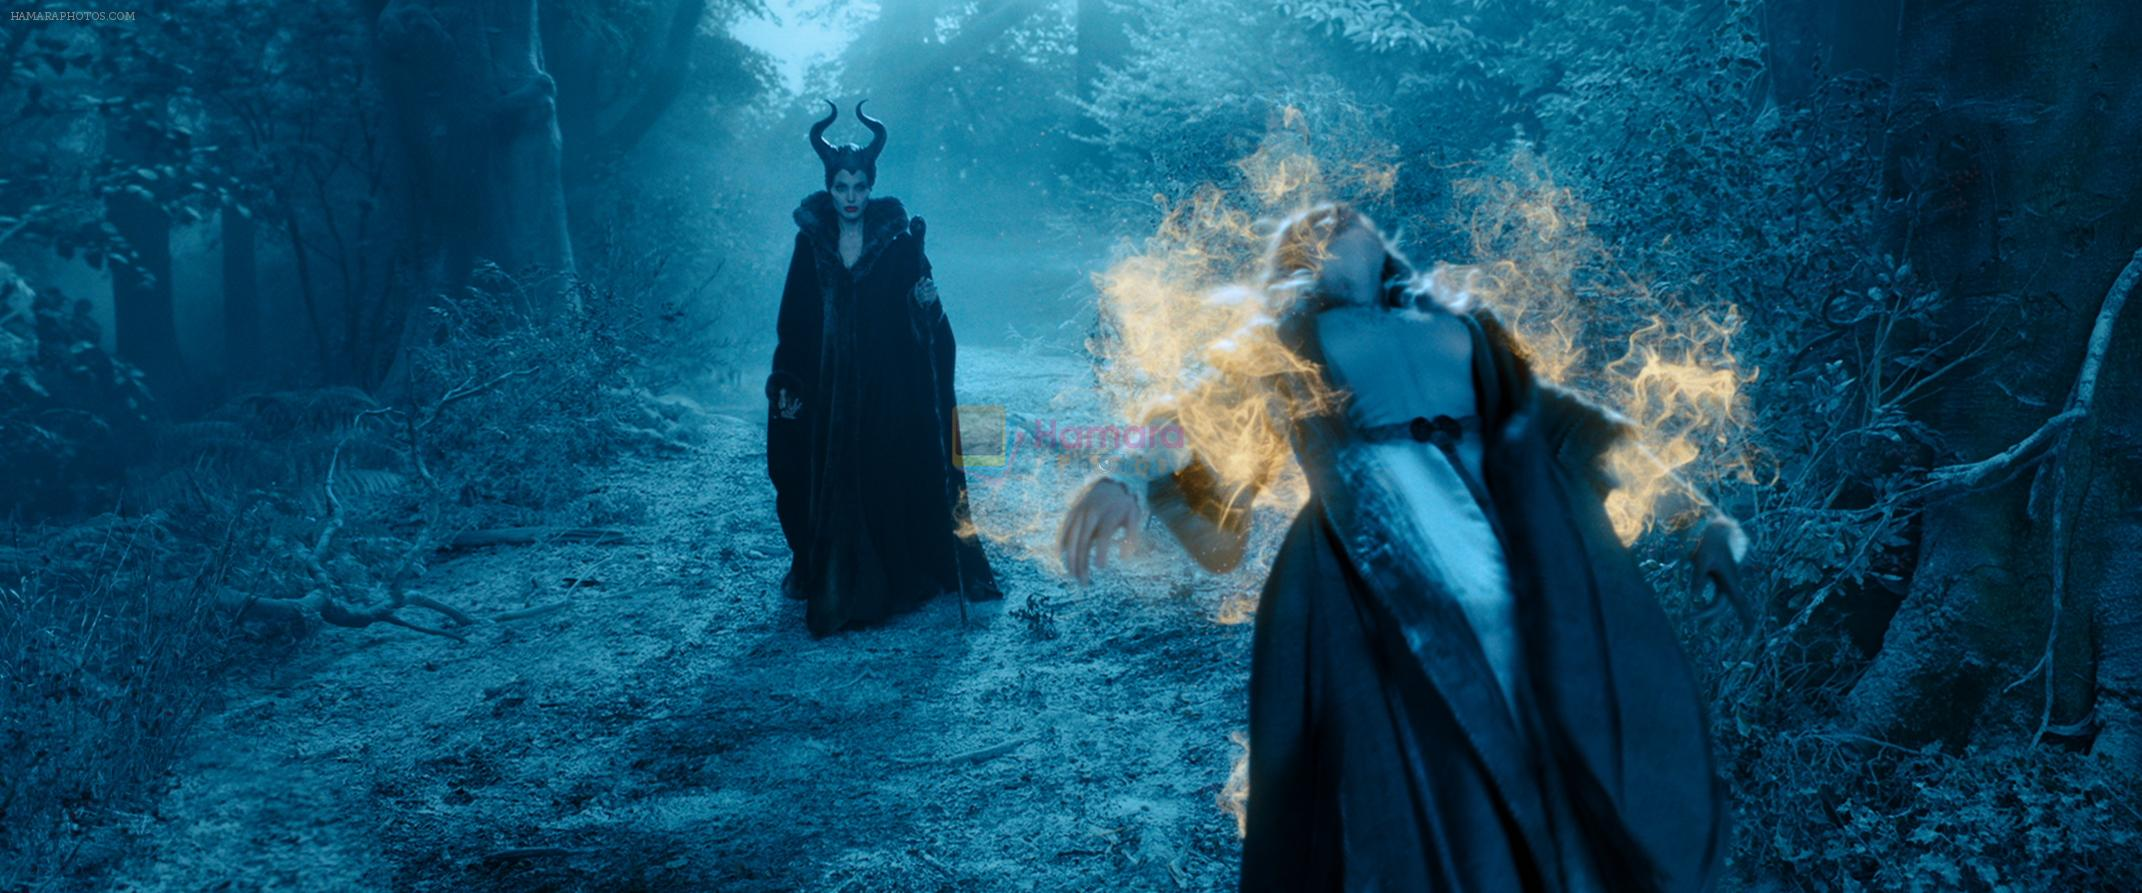 maleficent536acd2317678